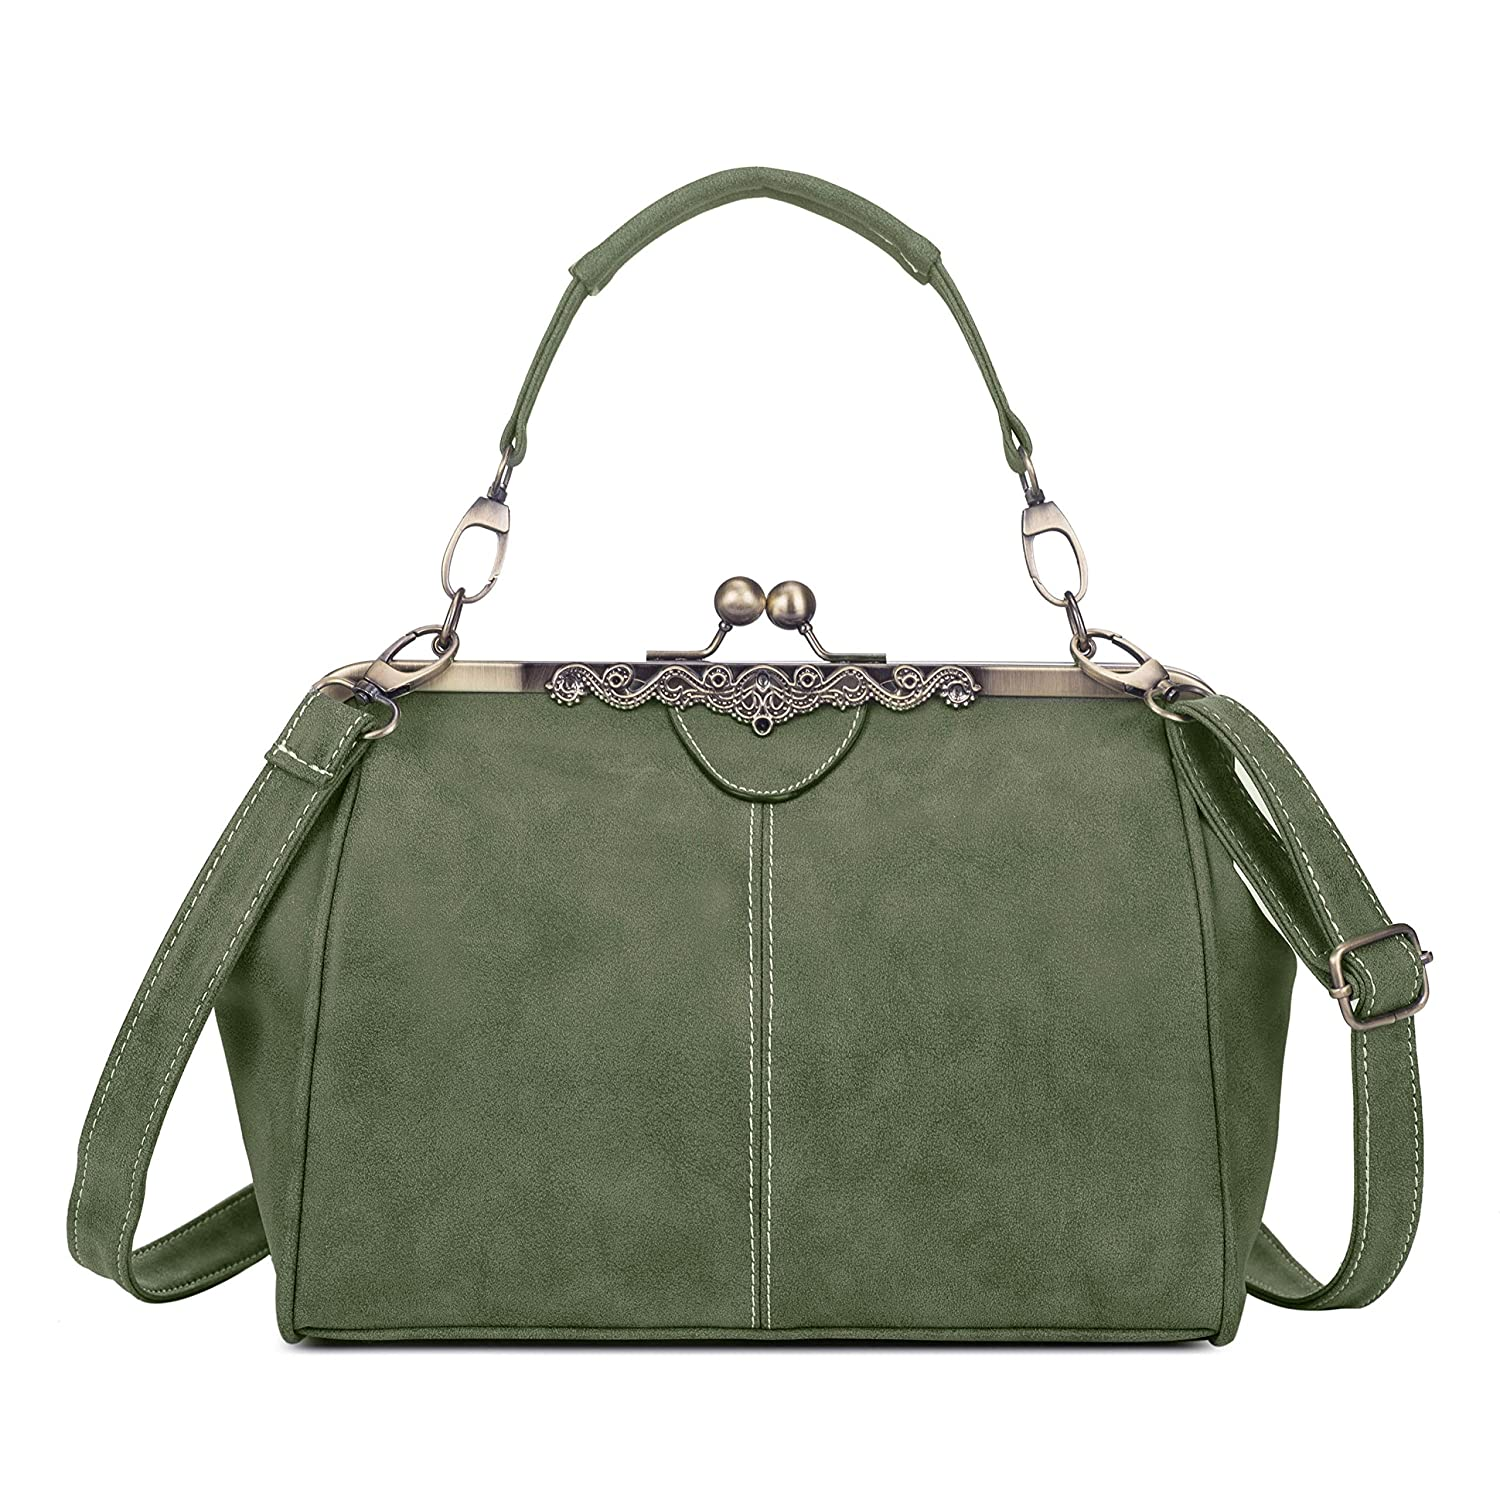 Women PU Leather Purse Retro Fashion Top Handle Handbag Kiss Lock Crossbody Shoulder  Bag for Ladies (Vintage Green)  Handbags  Amazon.com 33464aeb4ce53